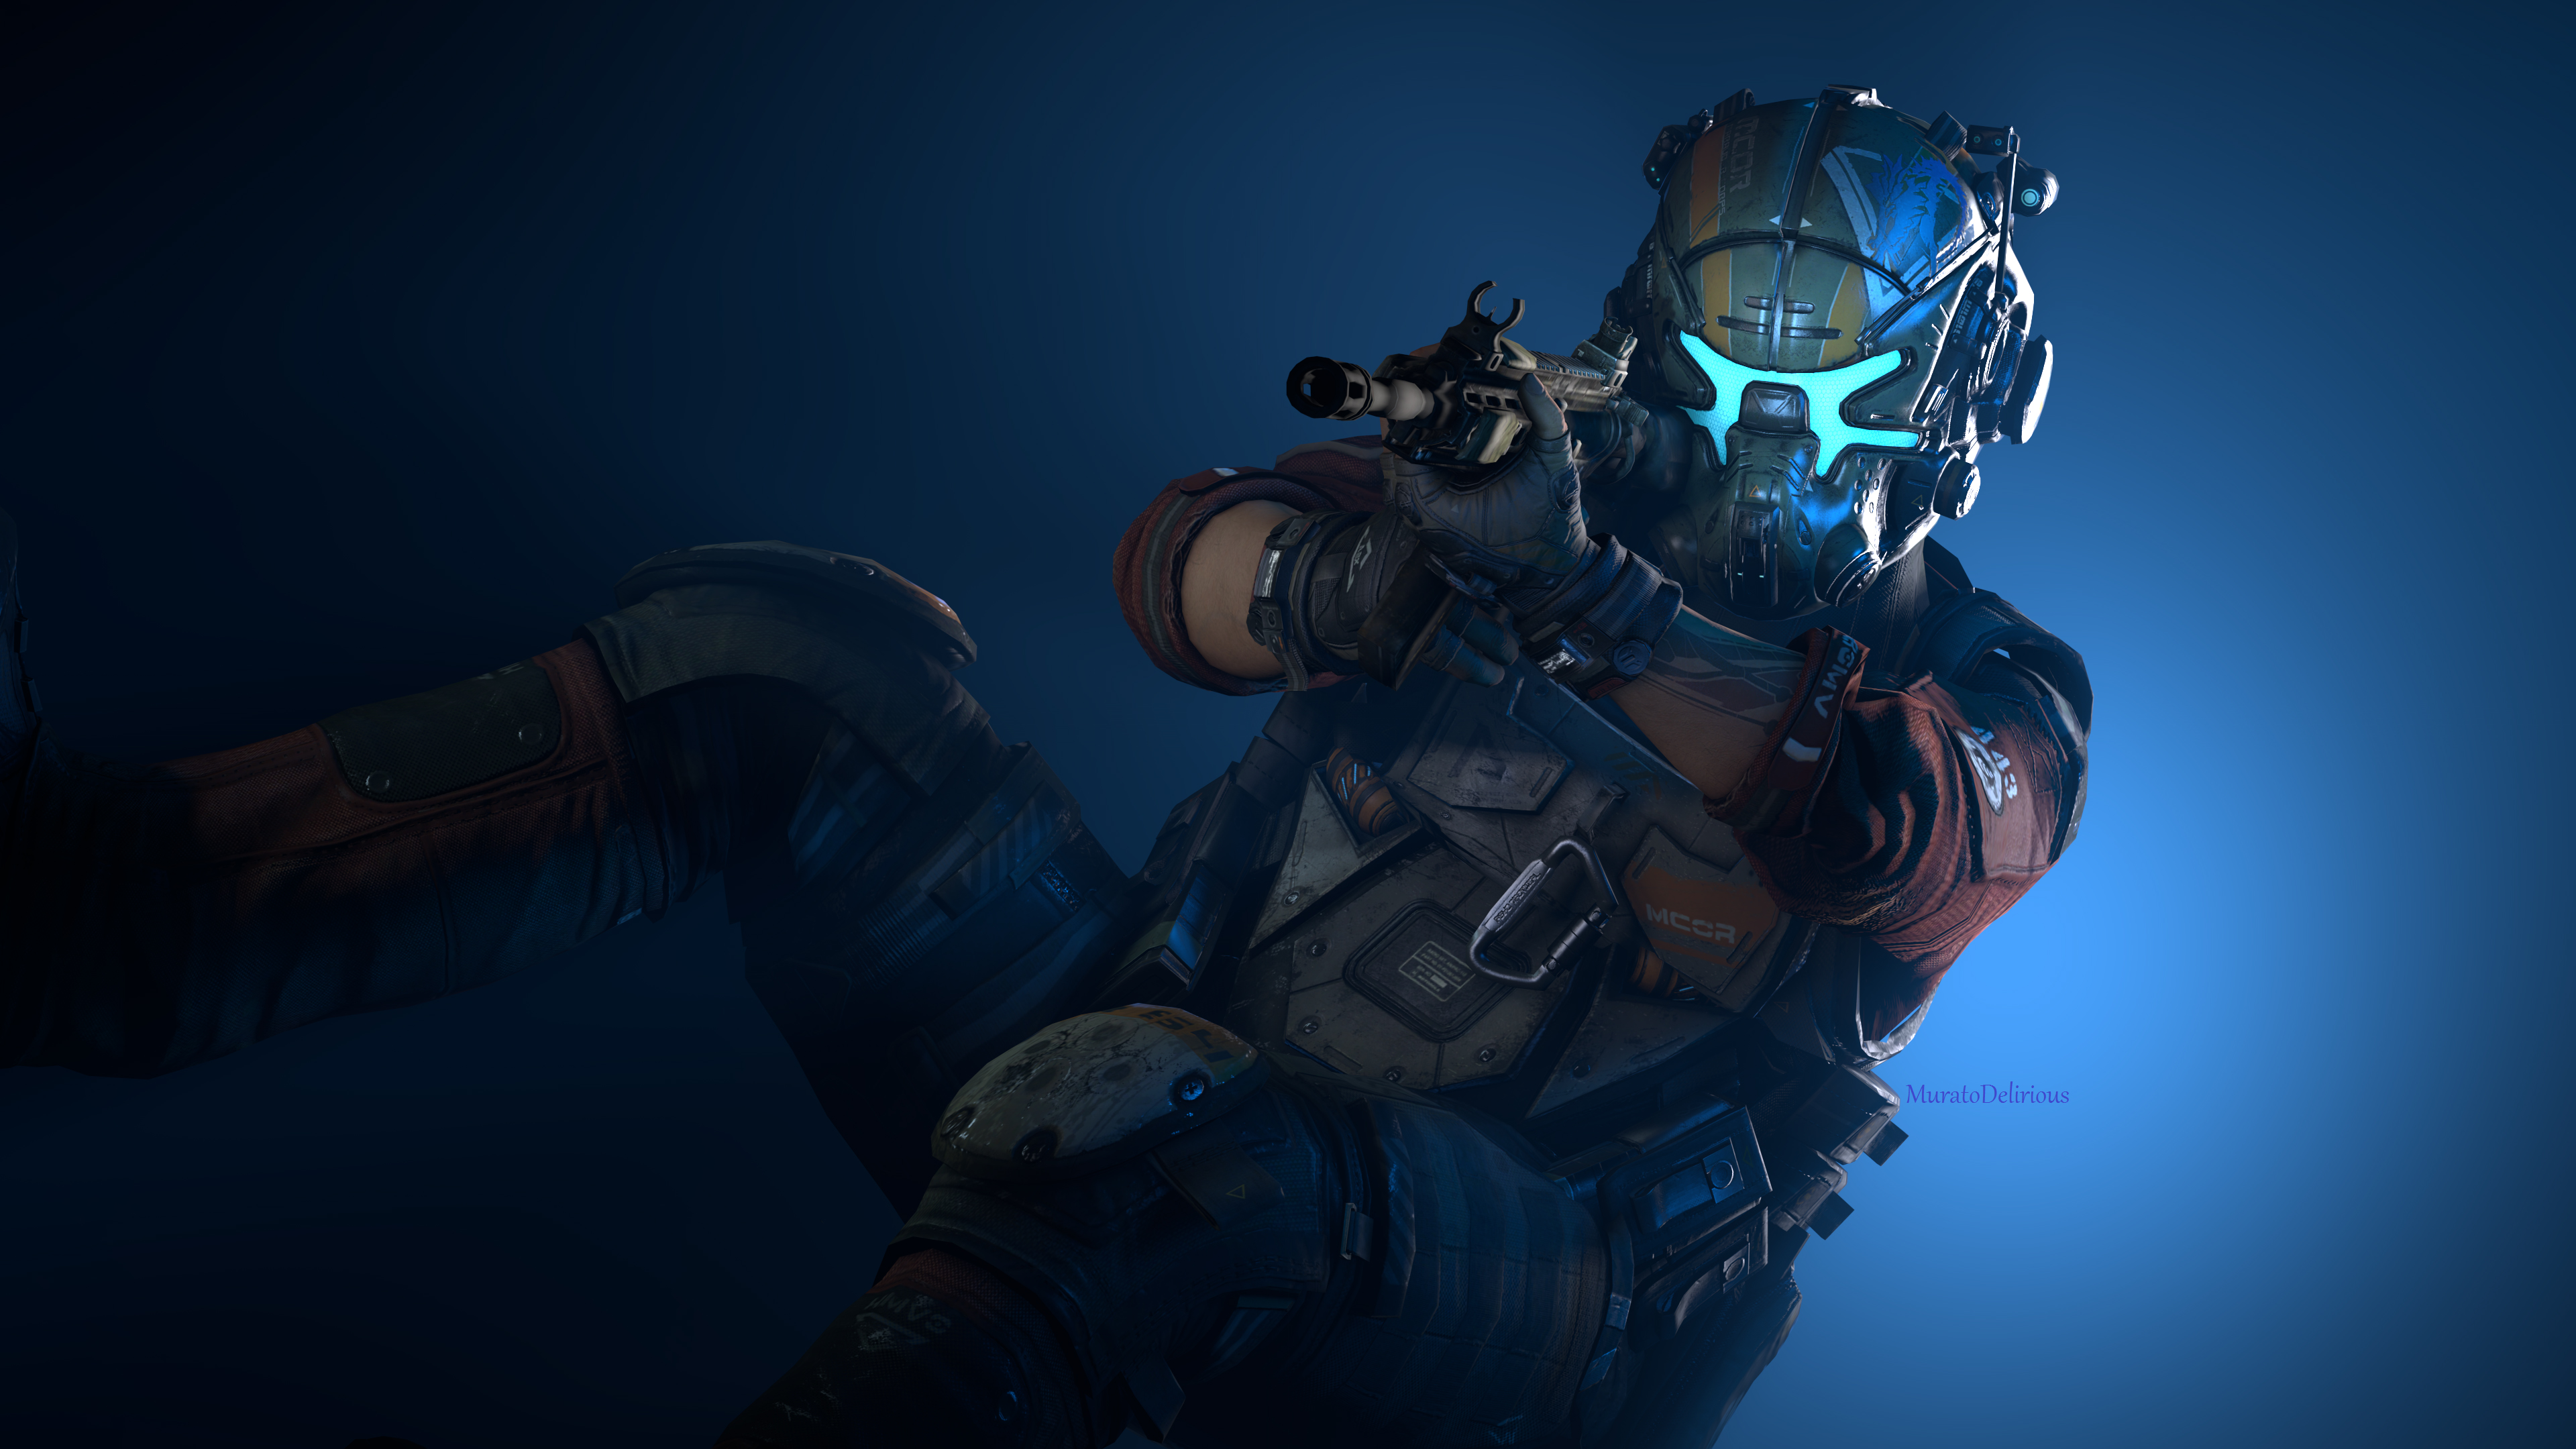 Fall Wallpaper Dual Monitor Jack Cooper Titanfall 2 4k Wallpapers Hd Wallpapers